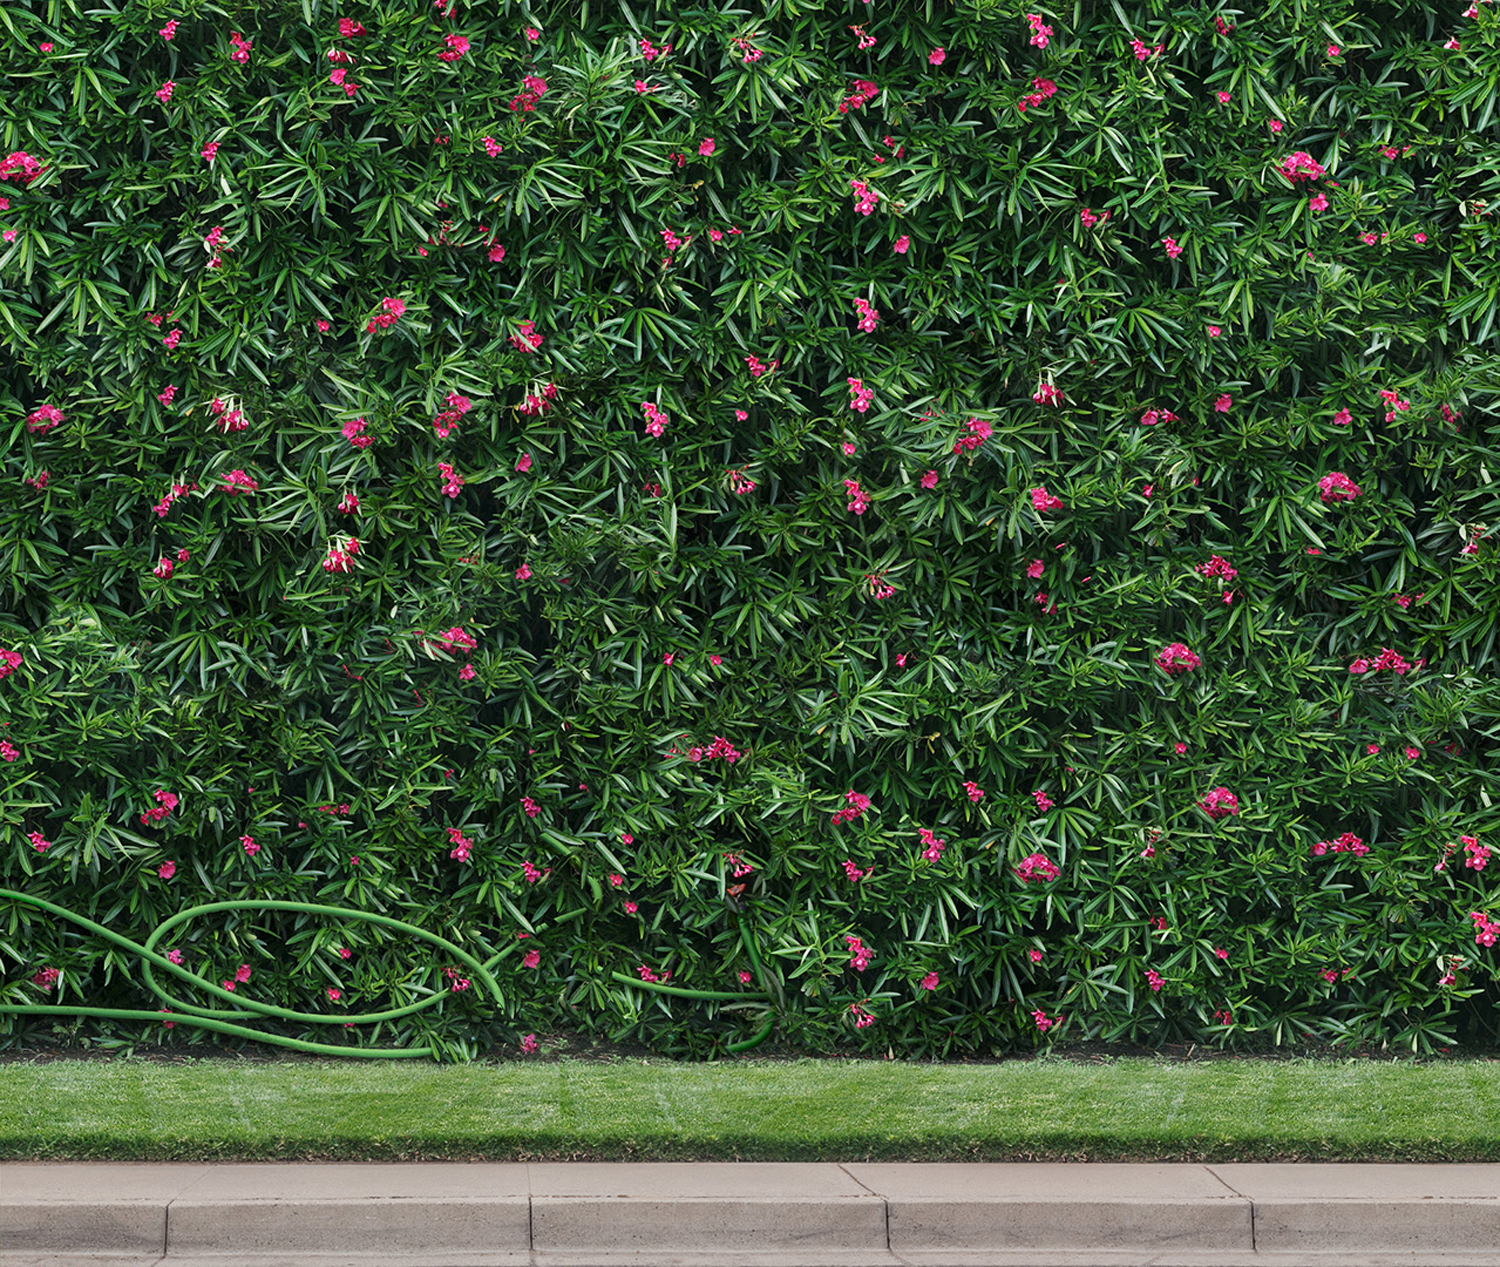 The Hedge, 16 x 19 inches, archival pigment print, 2014